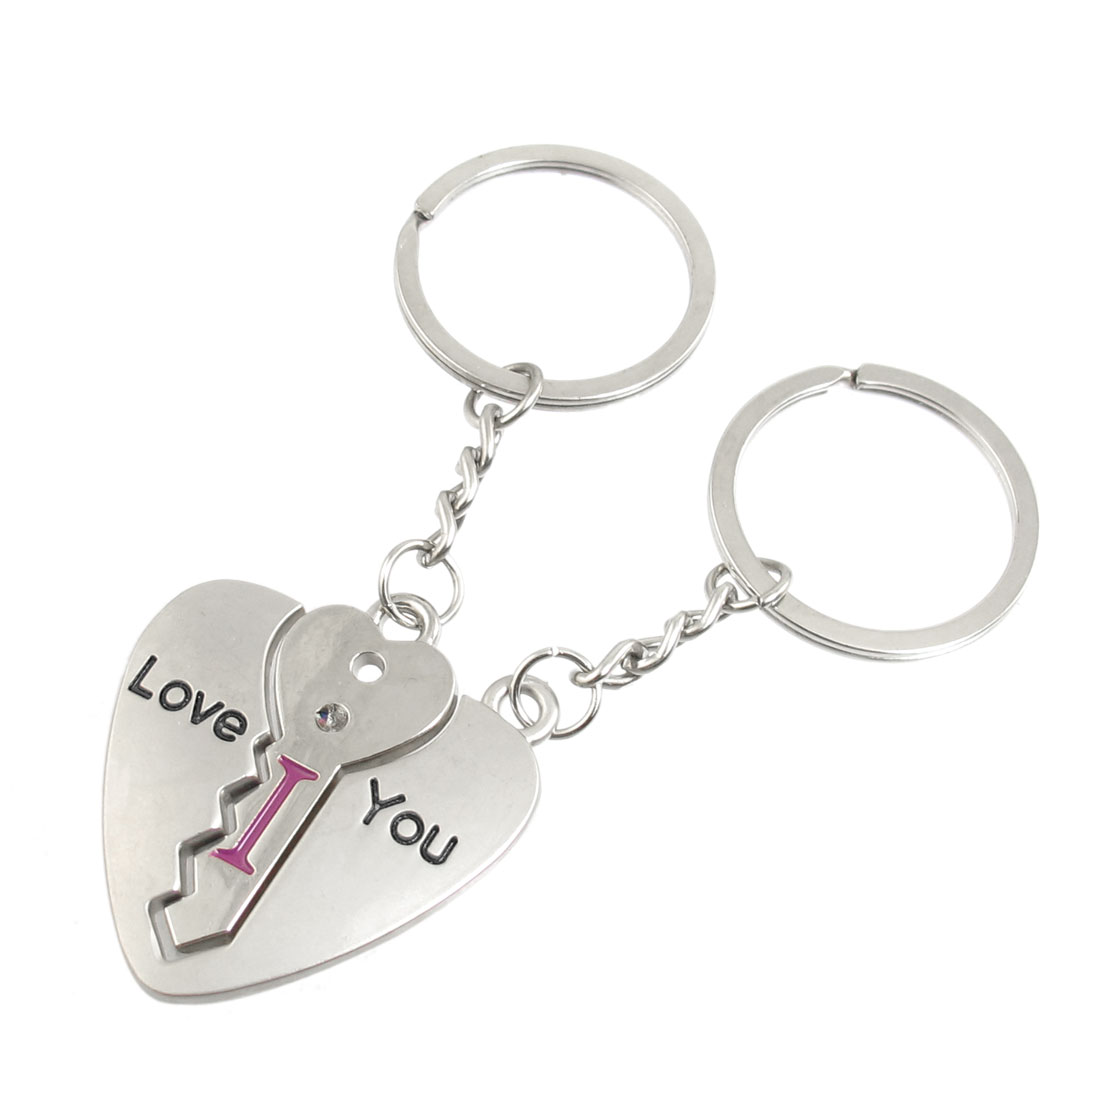 Httpwww Overlordsofchaos Comhtmlorigin Of The Word Jew Html: Lovers Couple I LOVE YOU Key Through Heart Keychain